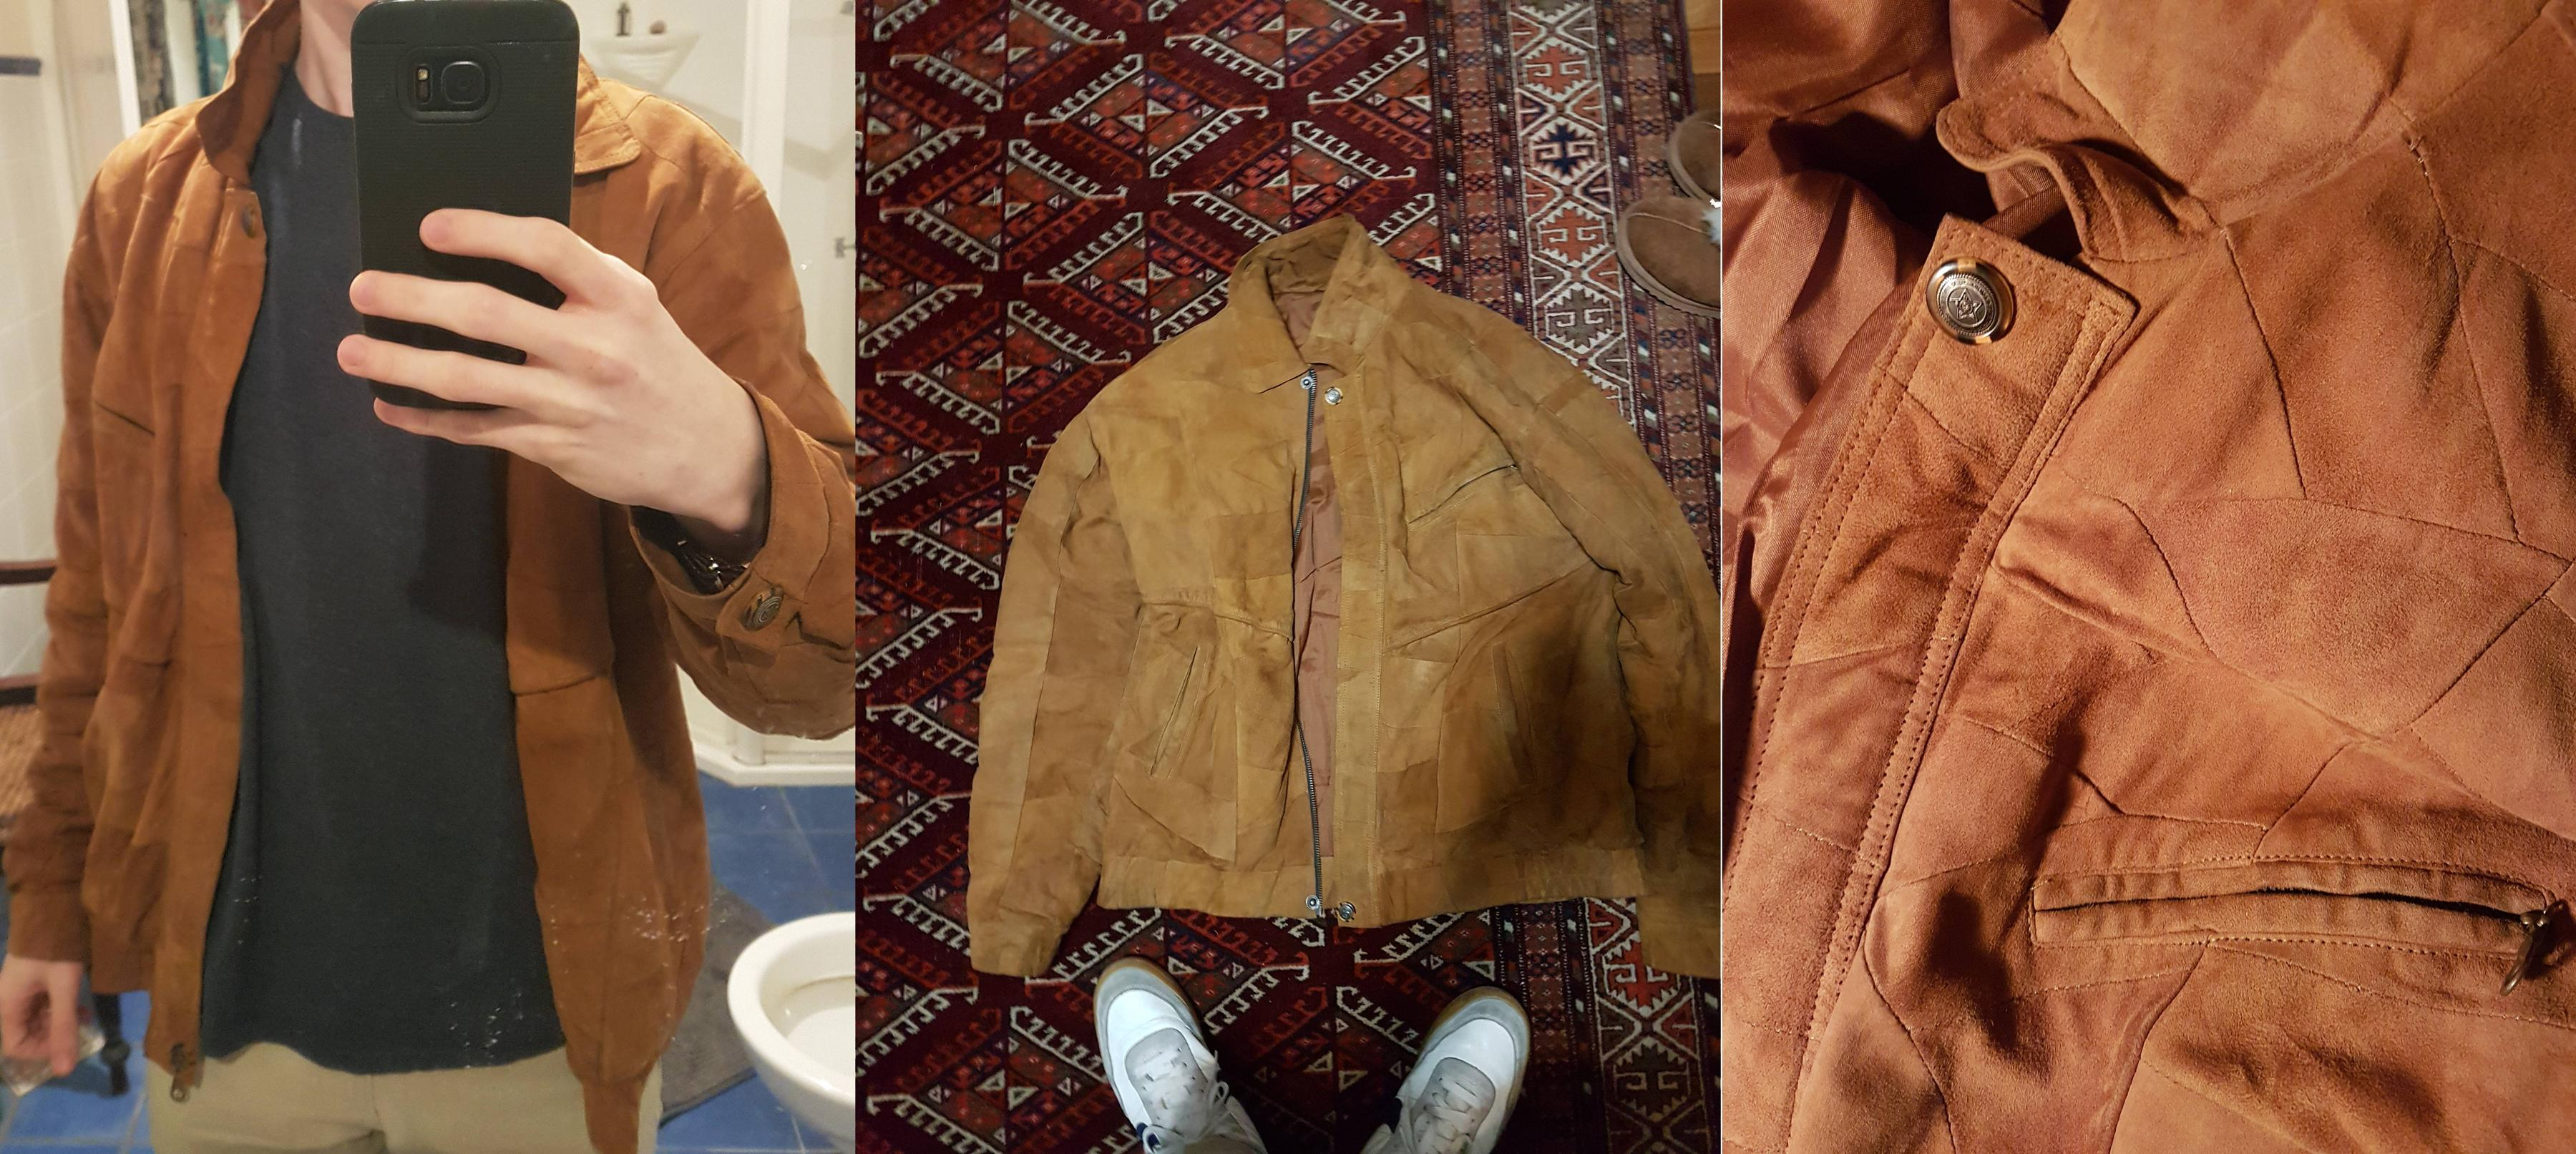 cxeq's photos in Looking for similar suede coat to this